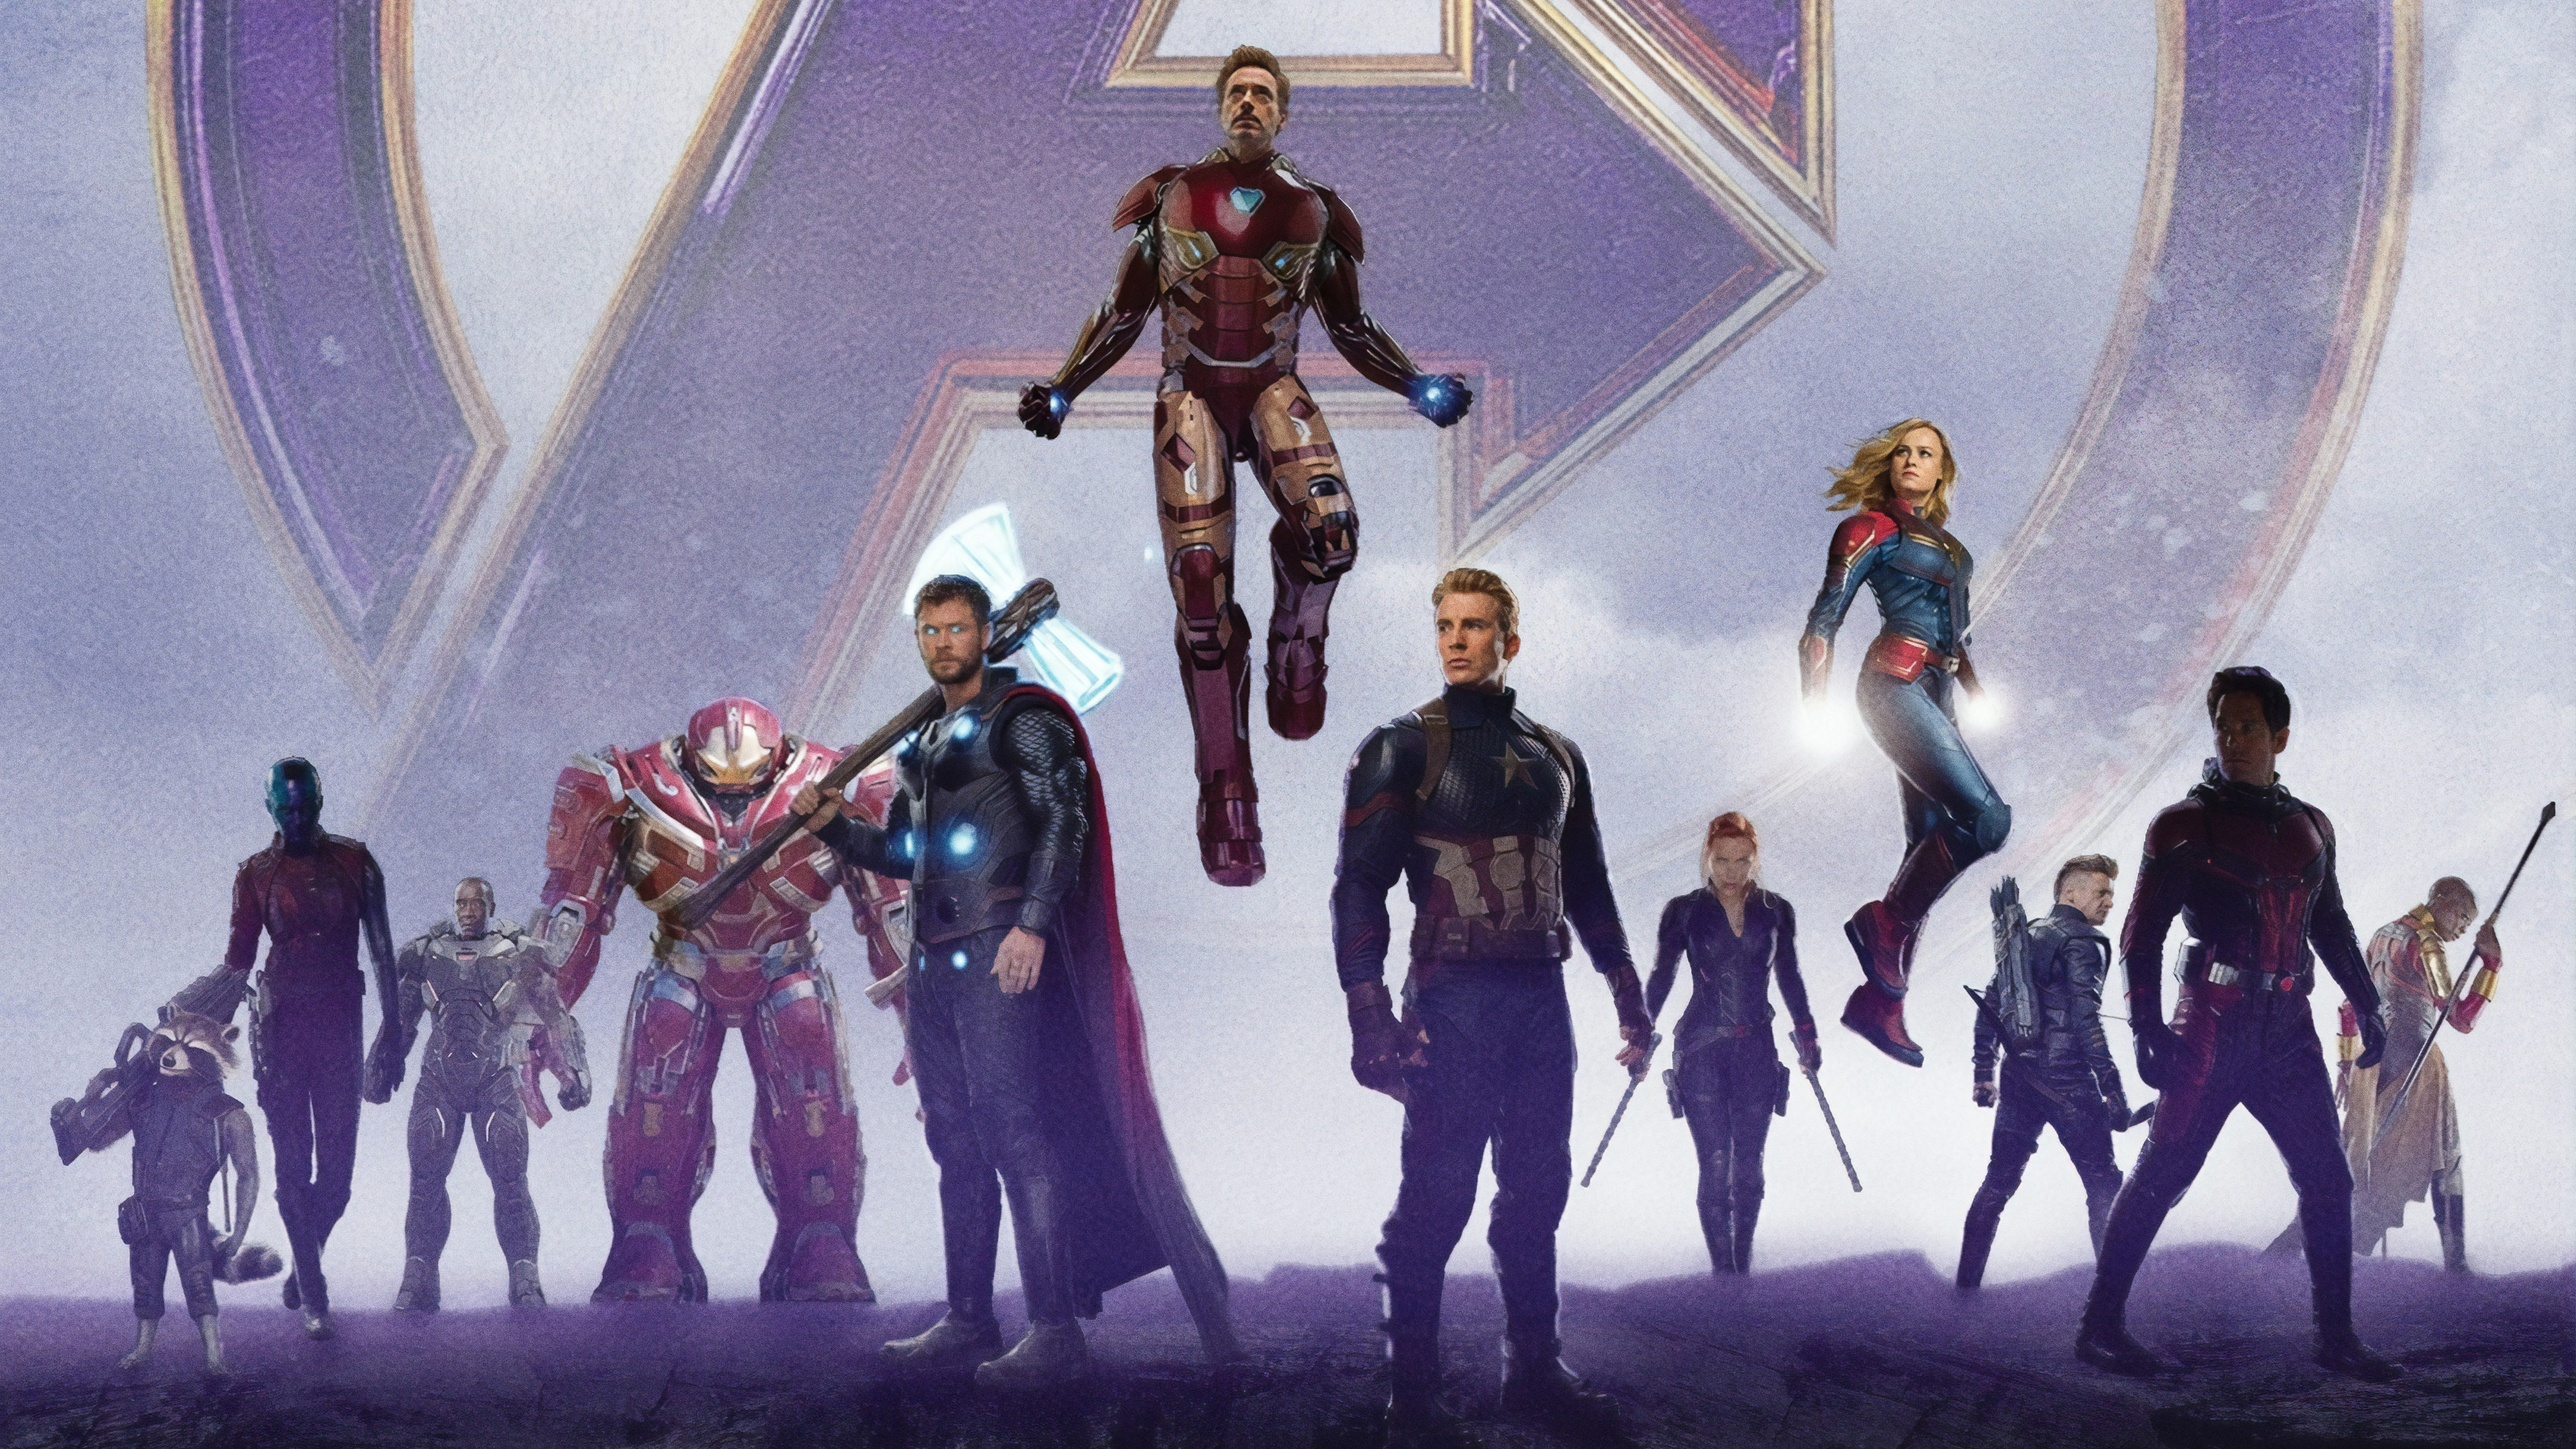 Movie Poster 2019: 4k Avengers Endgame 2019, HD Movies, 4k Wallpapers, Images